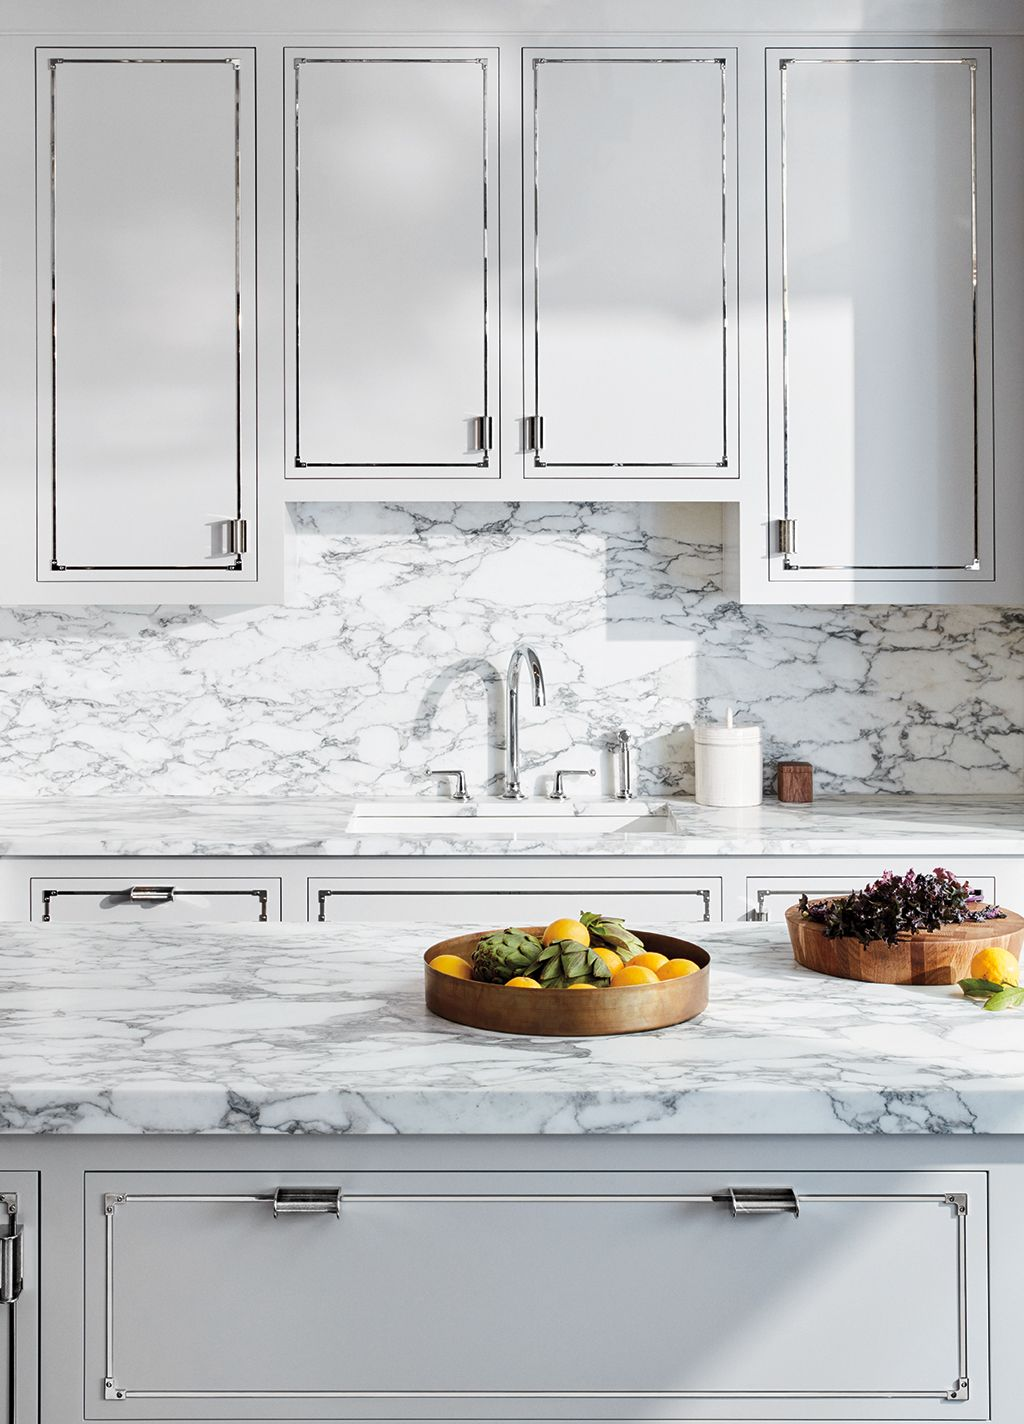 Cabinetry Collections Waterworks Waterworks Kitchen Remodel Small Kitchen Interior Kitchen Remodeling Projects